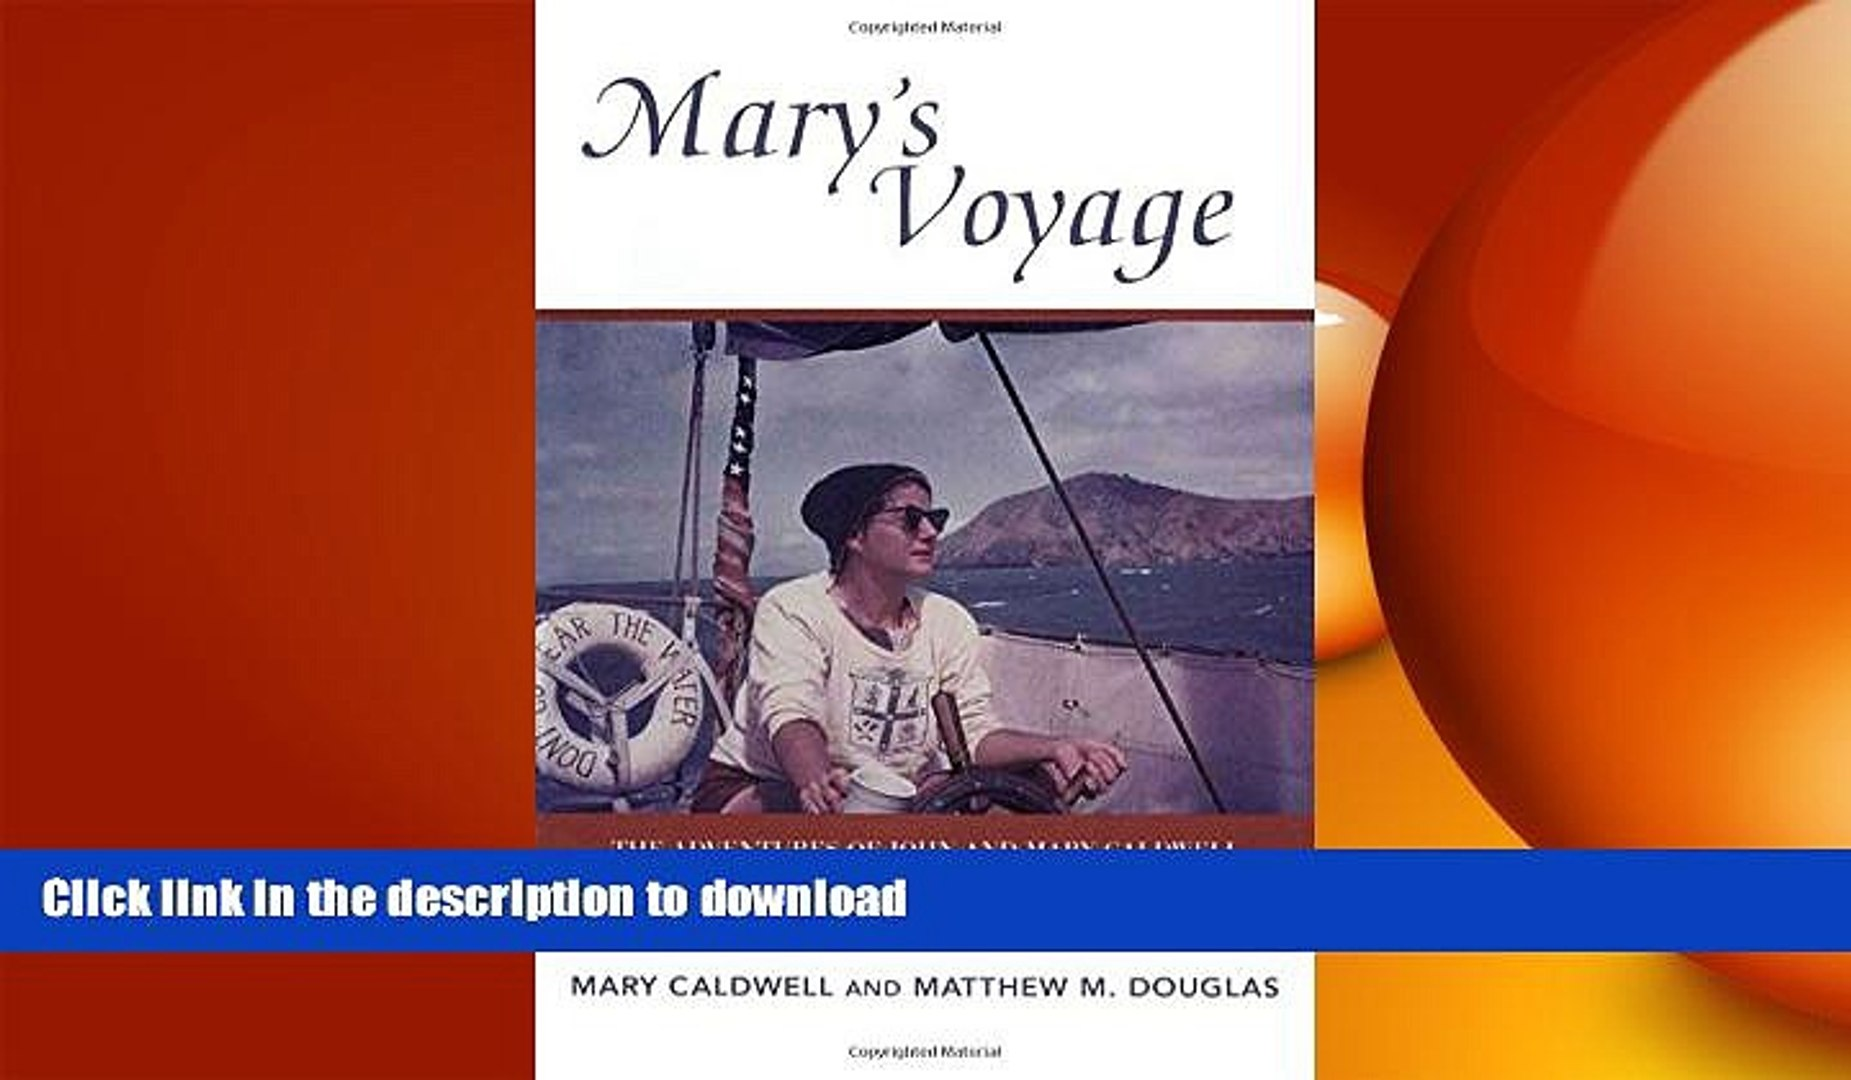 FAVORITE BOOK  Mary s Voyage: The Adventures of John and Mary Caldwell - A Sequel to Desparate